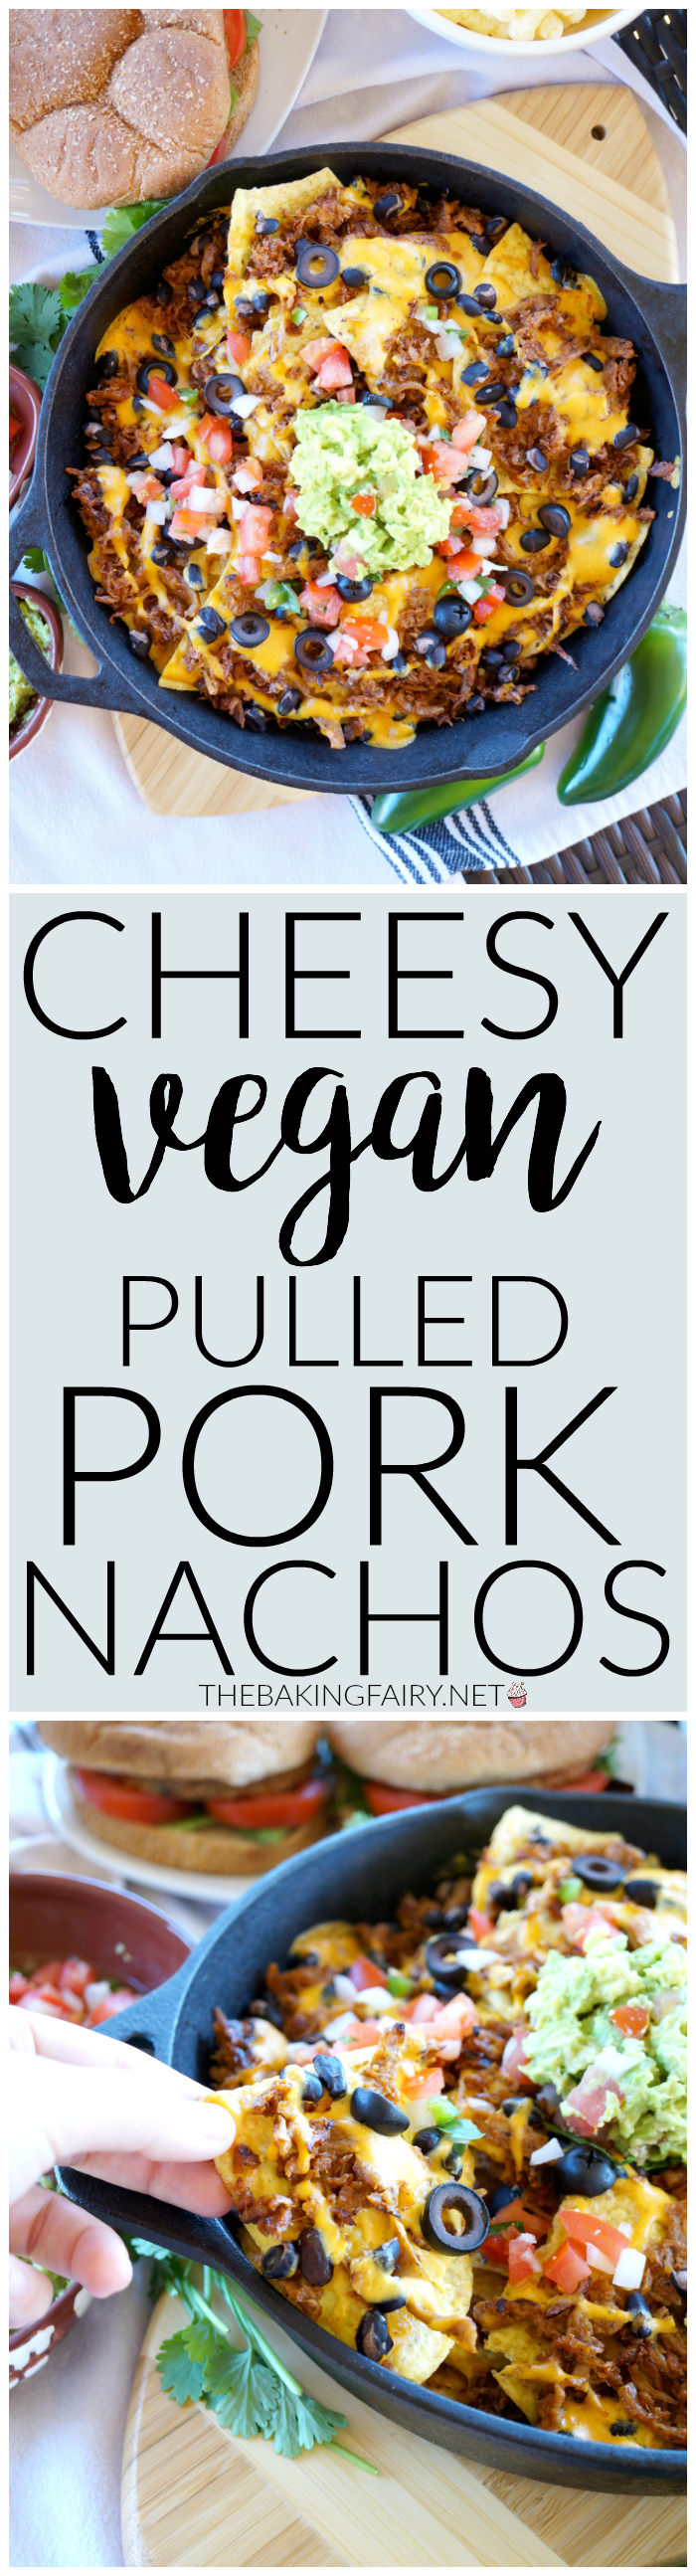 cheesy vegan pulled pork nachos | The Baking Fairy #TailgateWithATwist #SeasonalSolutions #ad